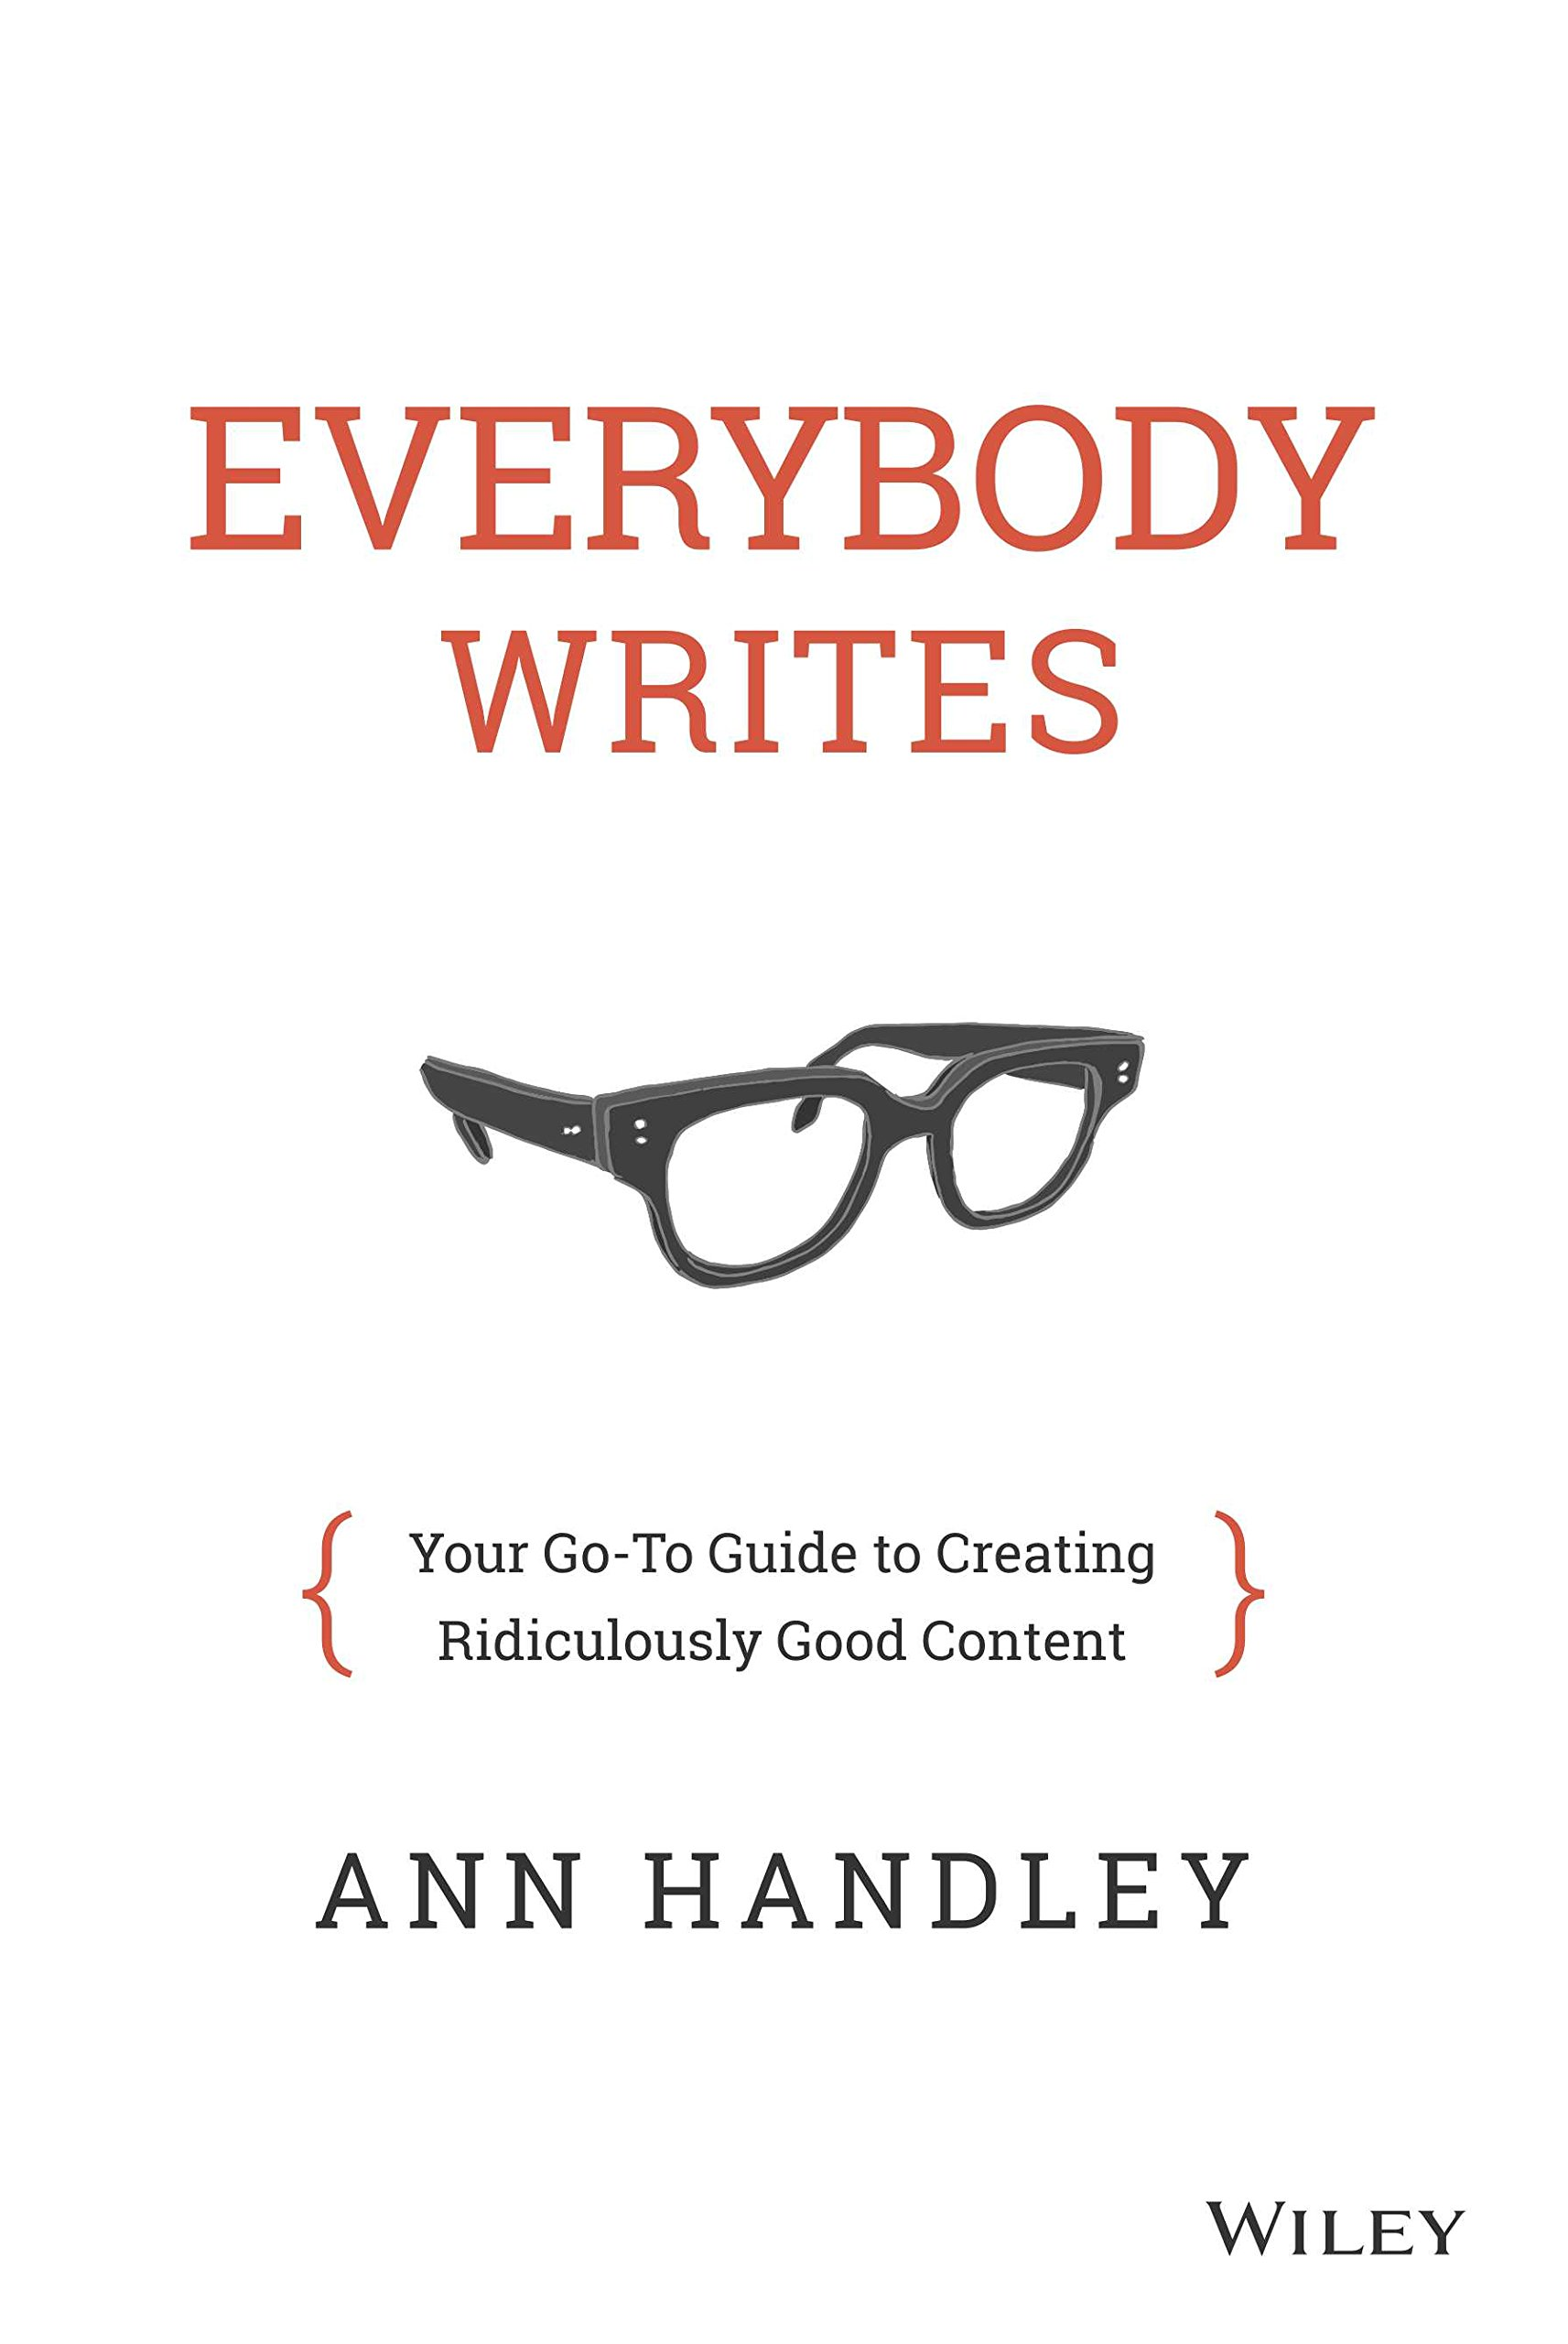 Everybody Writes: Your Go-to Guide to Creating Ridiculously Good Content: Amazon.de: Handley, Ann: Fremdsprachige Bücher